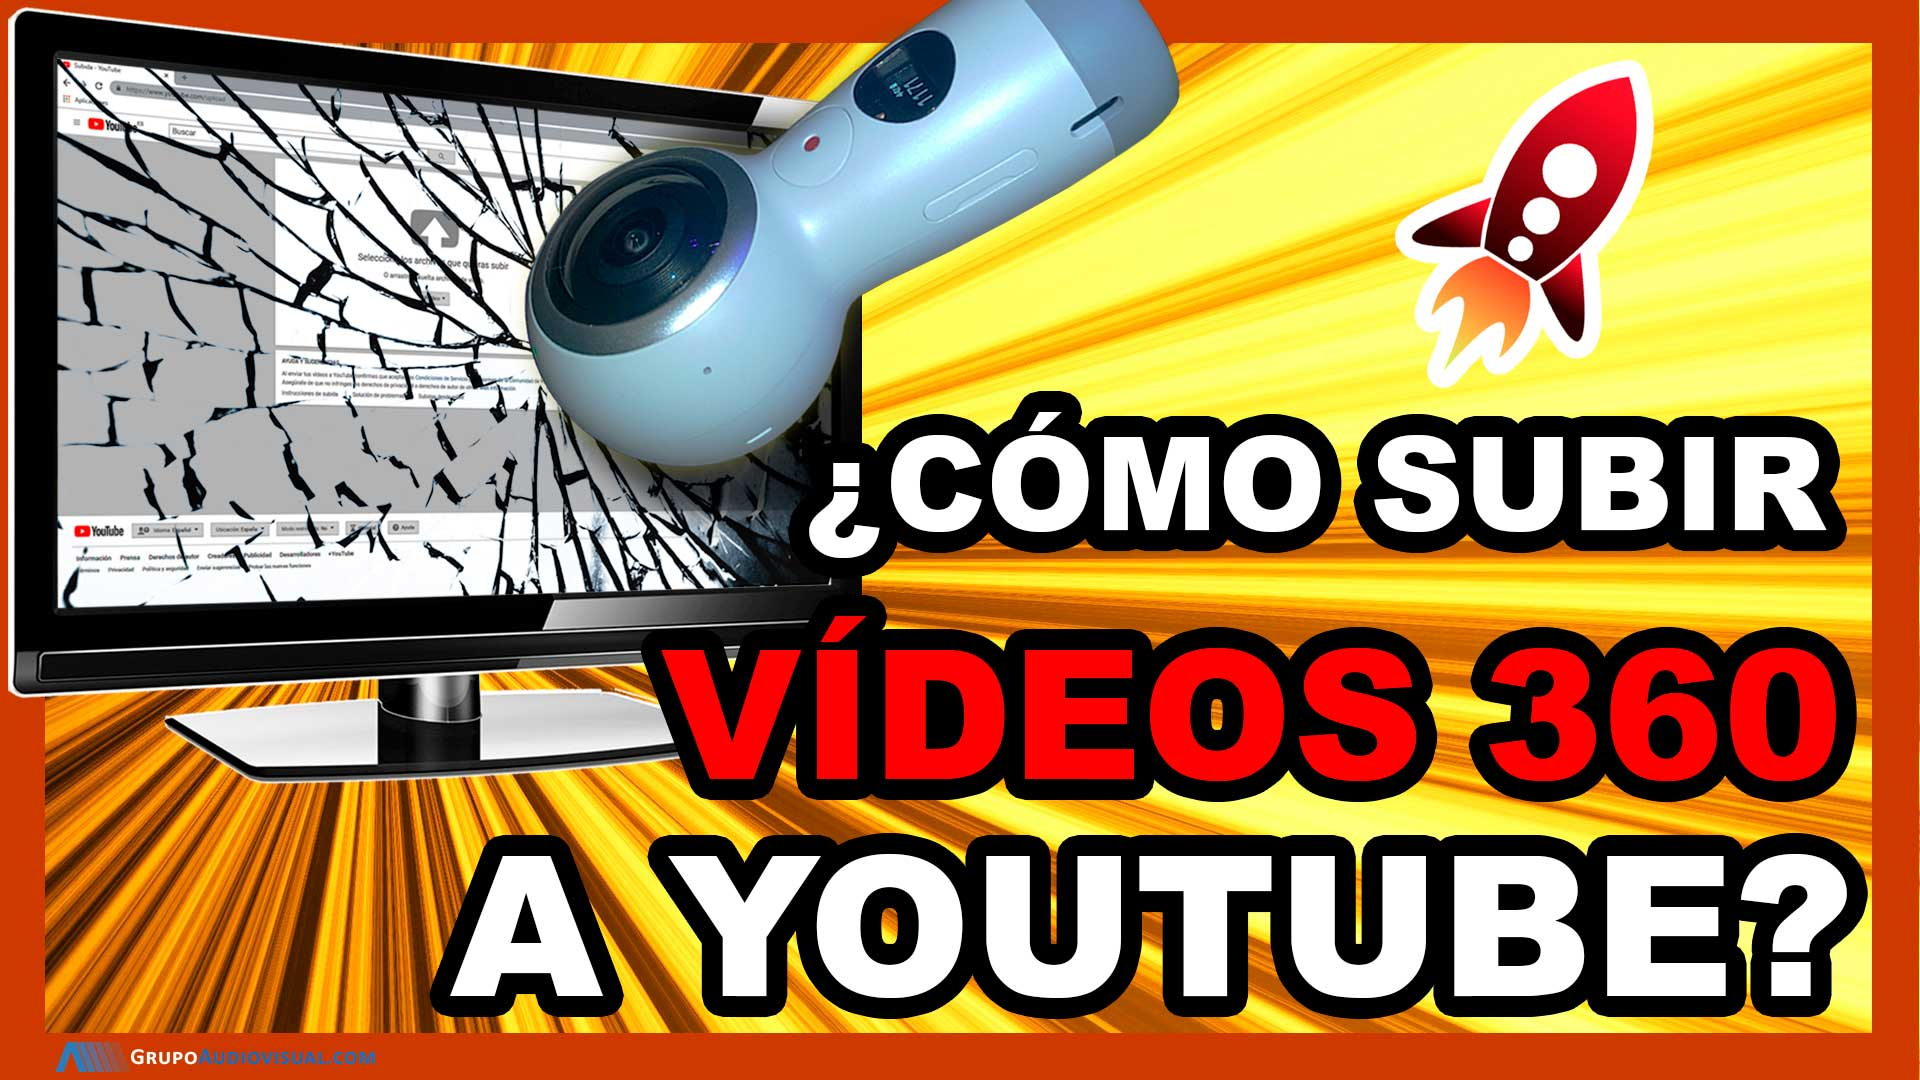 Cómo subir un vídeo 360 a Youtube 2020